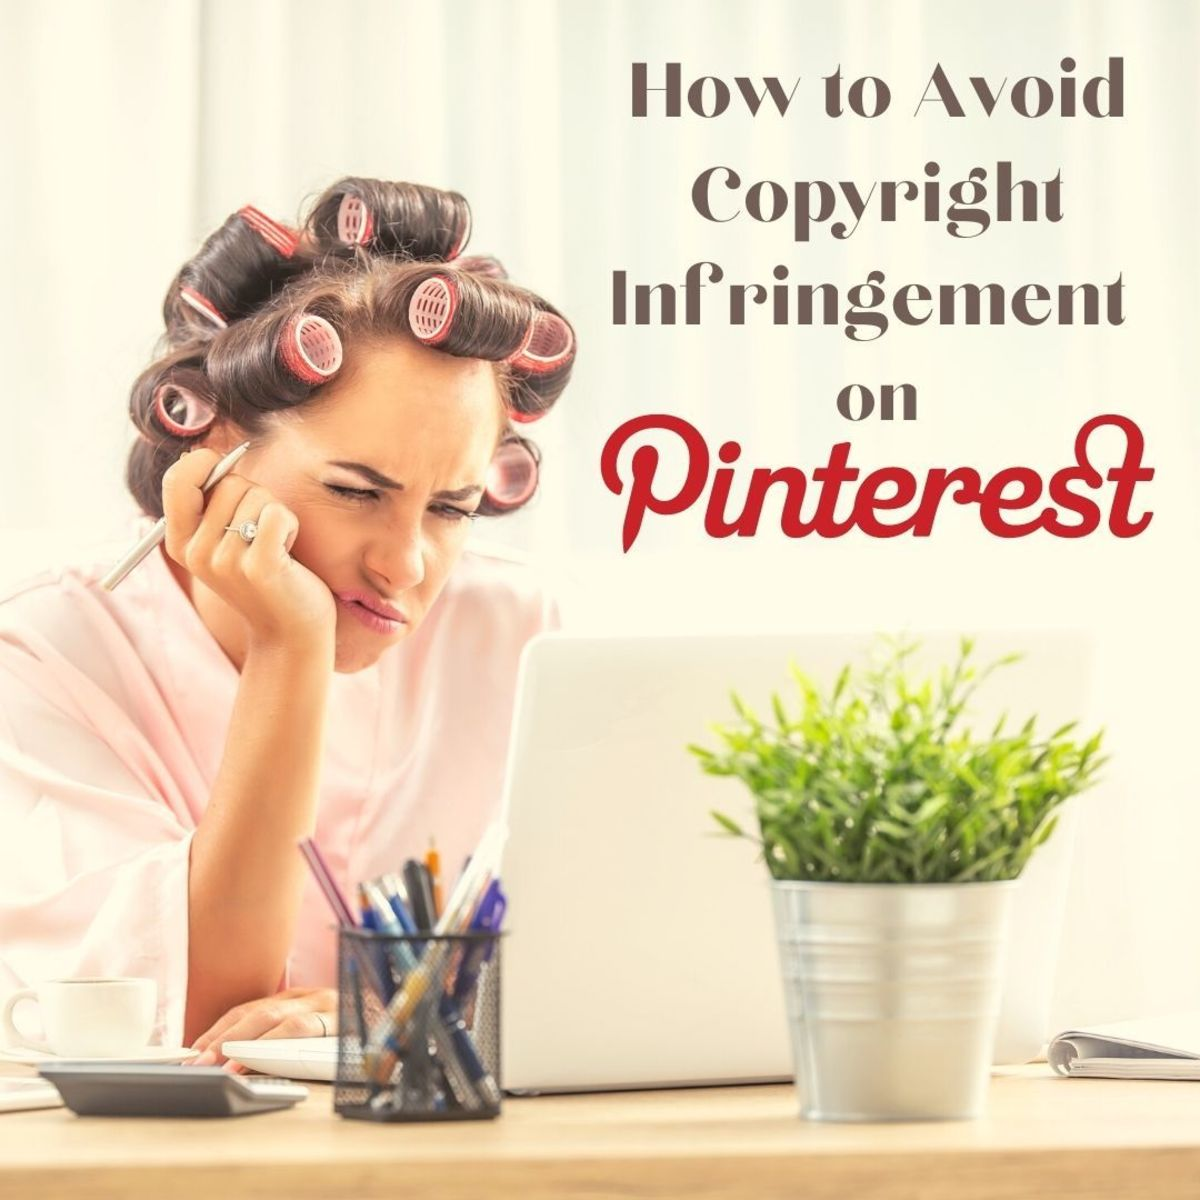 Make sure you know the ins and outs of copyright law as it relates to Pinterest!